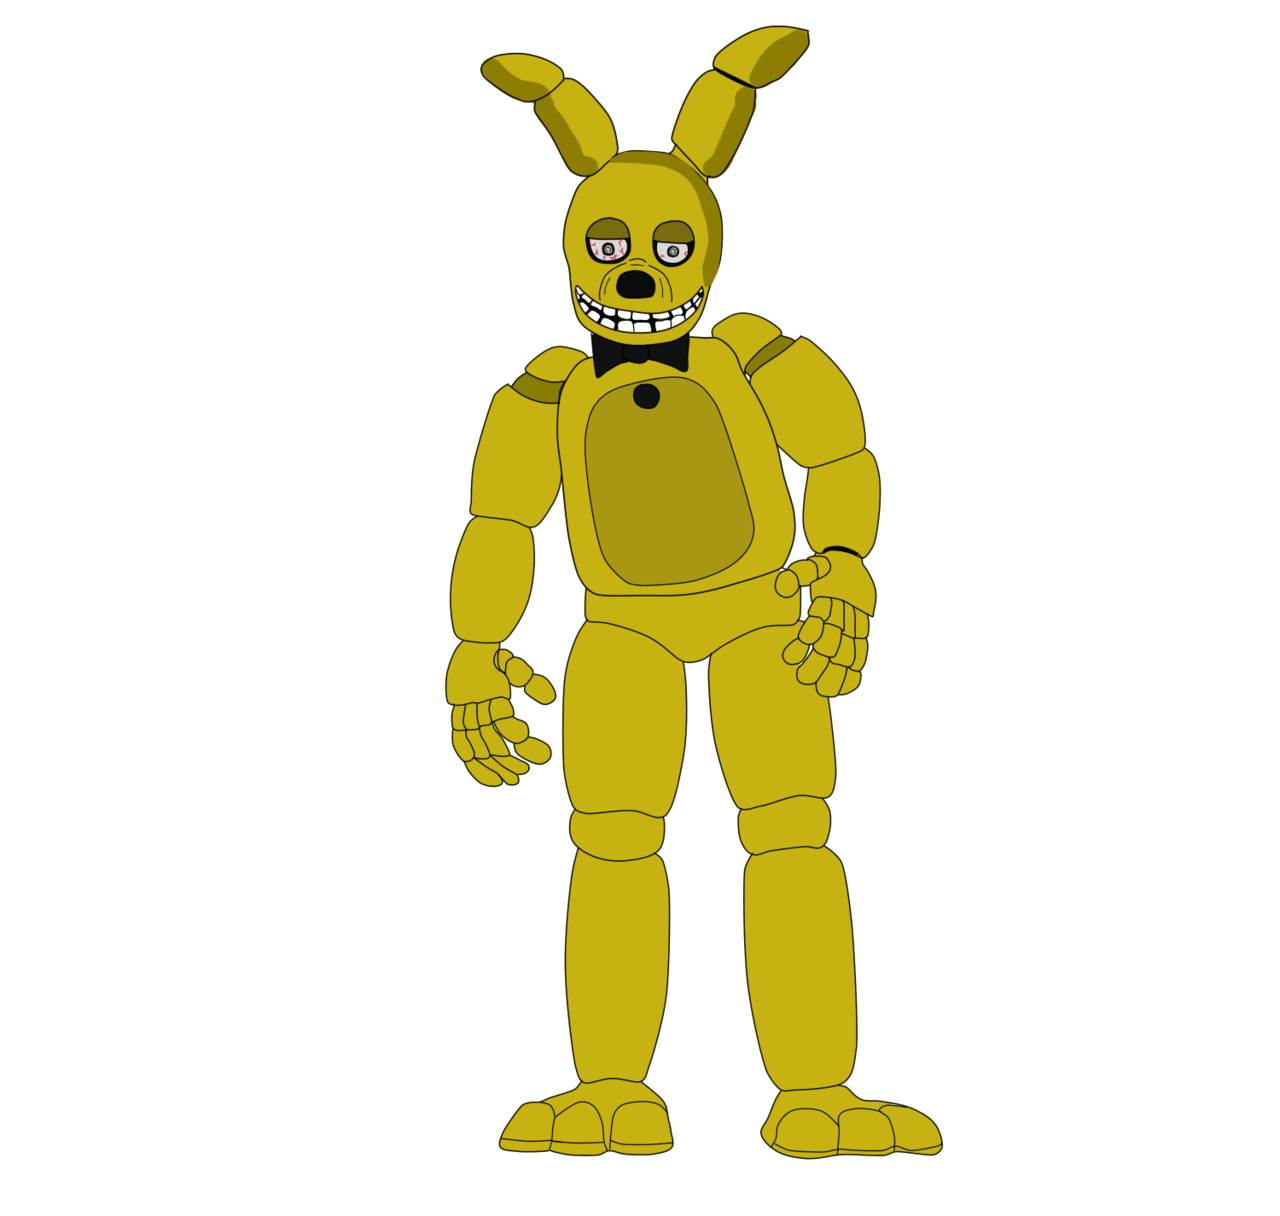 Spring Bonnie (Fixed Springtrap)